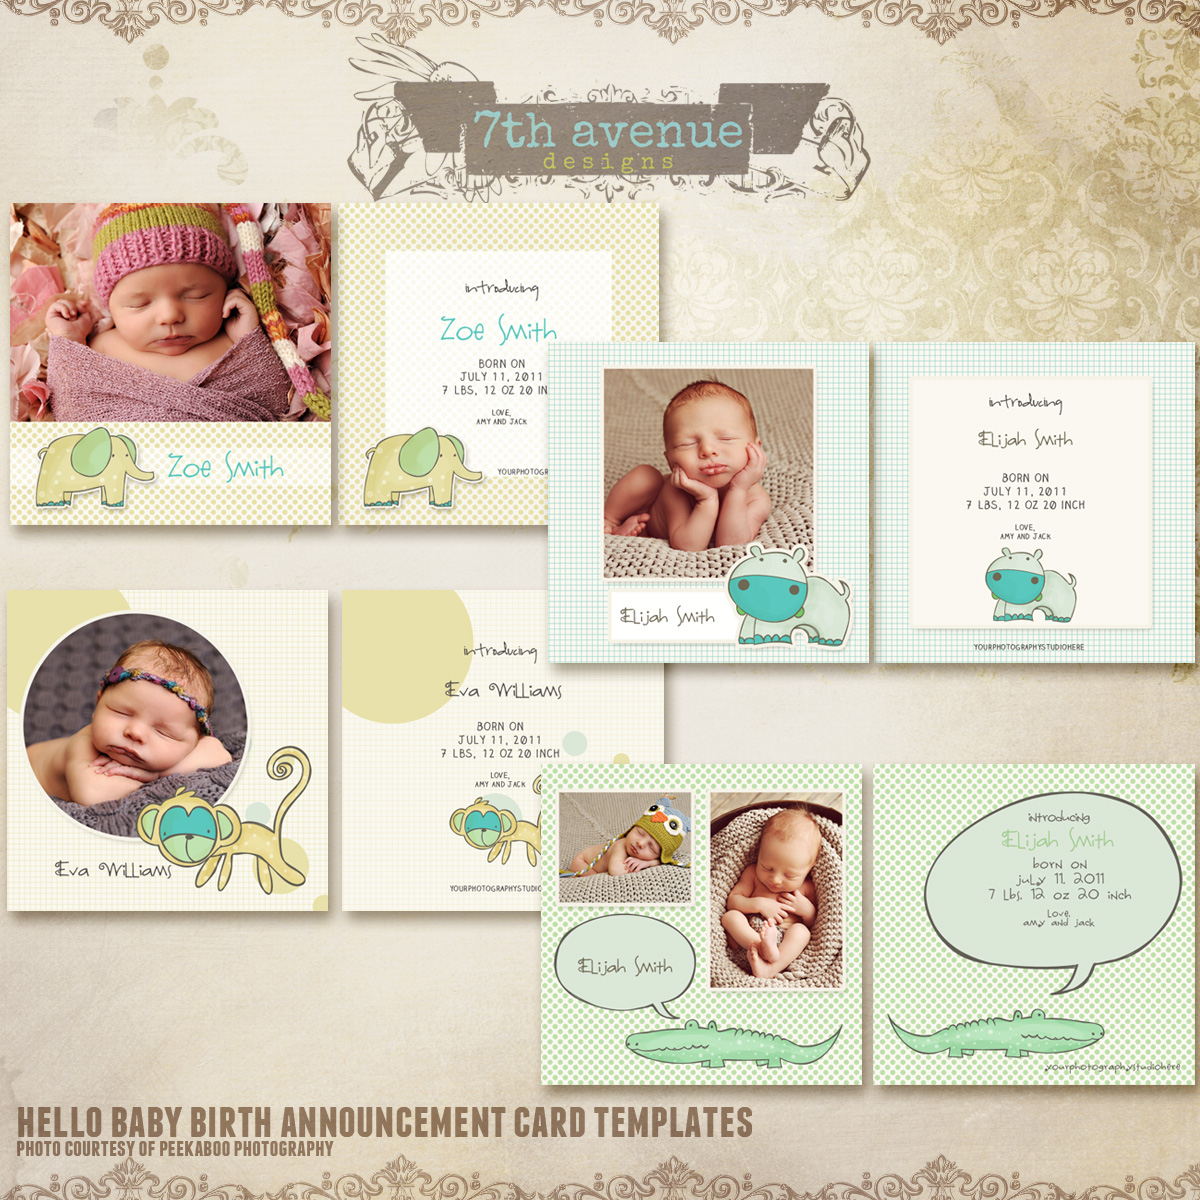 Hello Baby Birth Announcement Card Templates